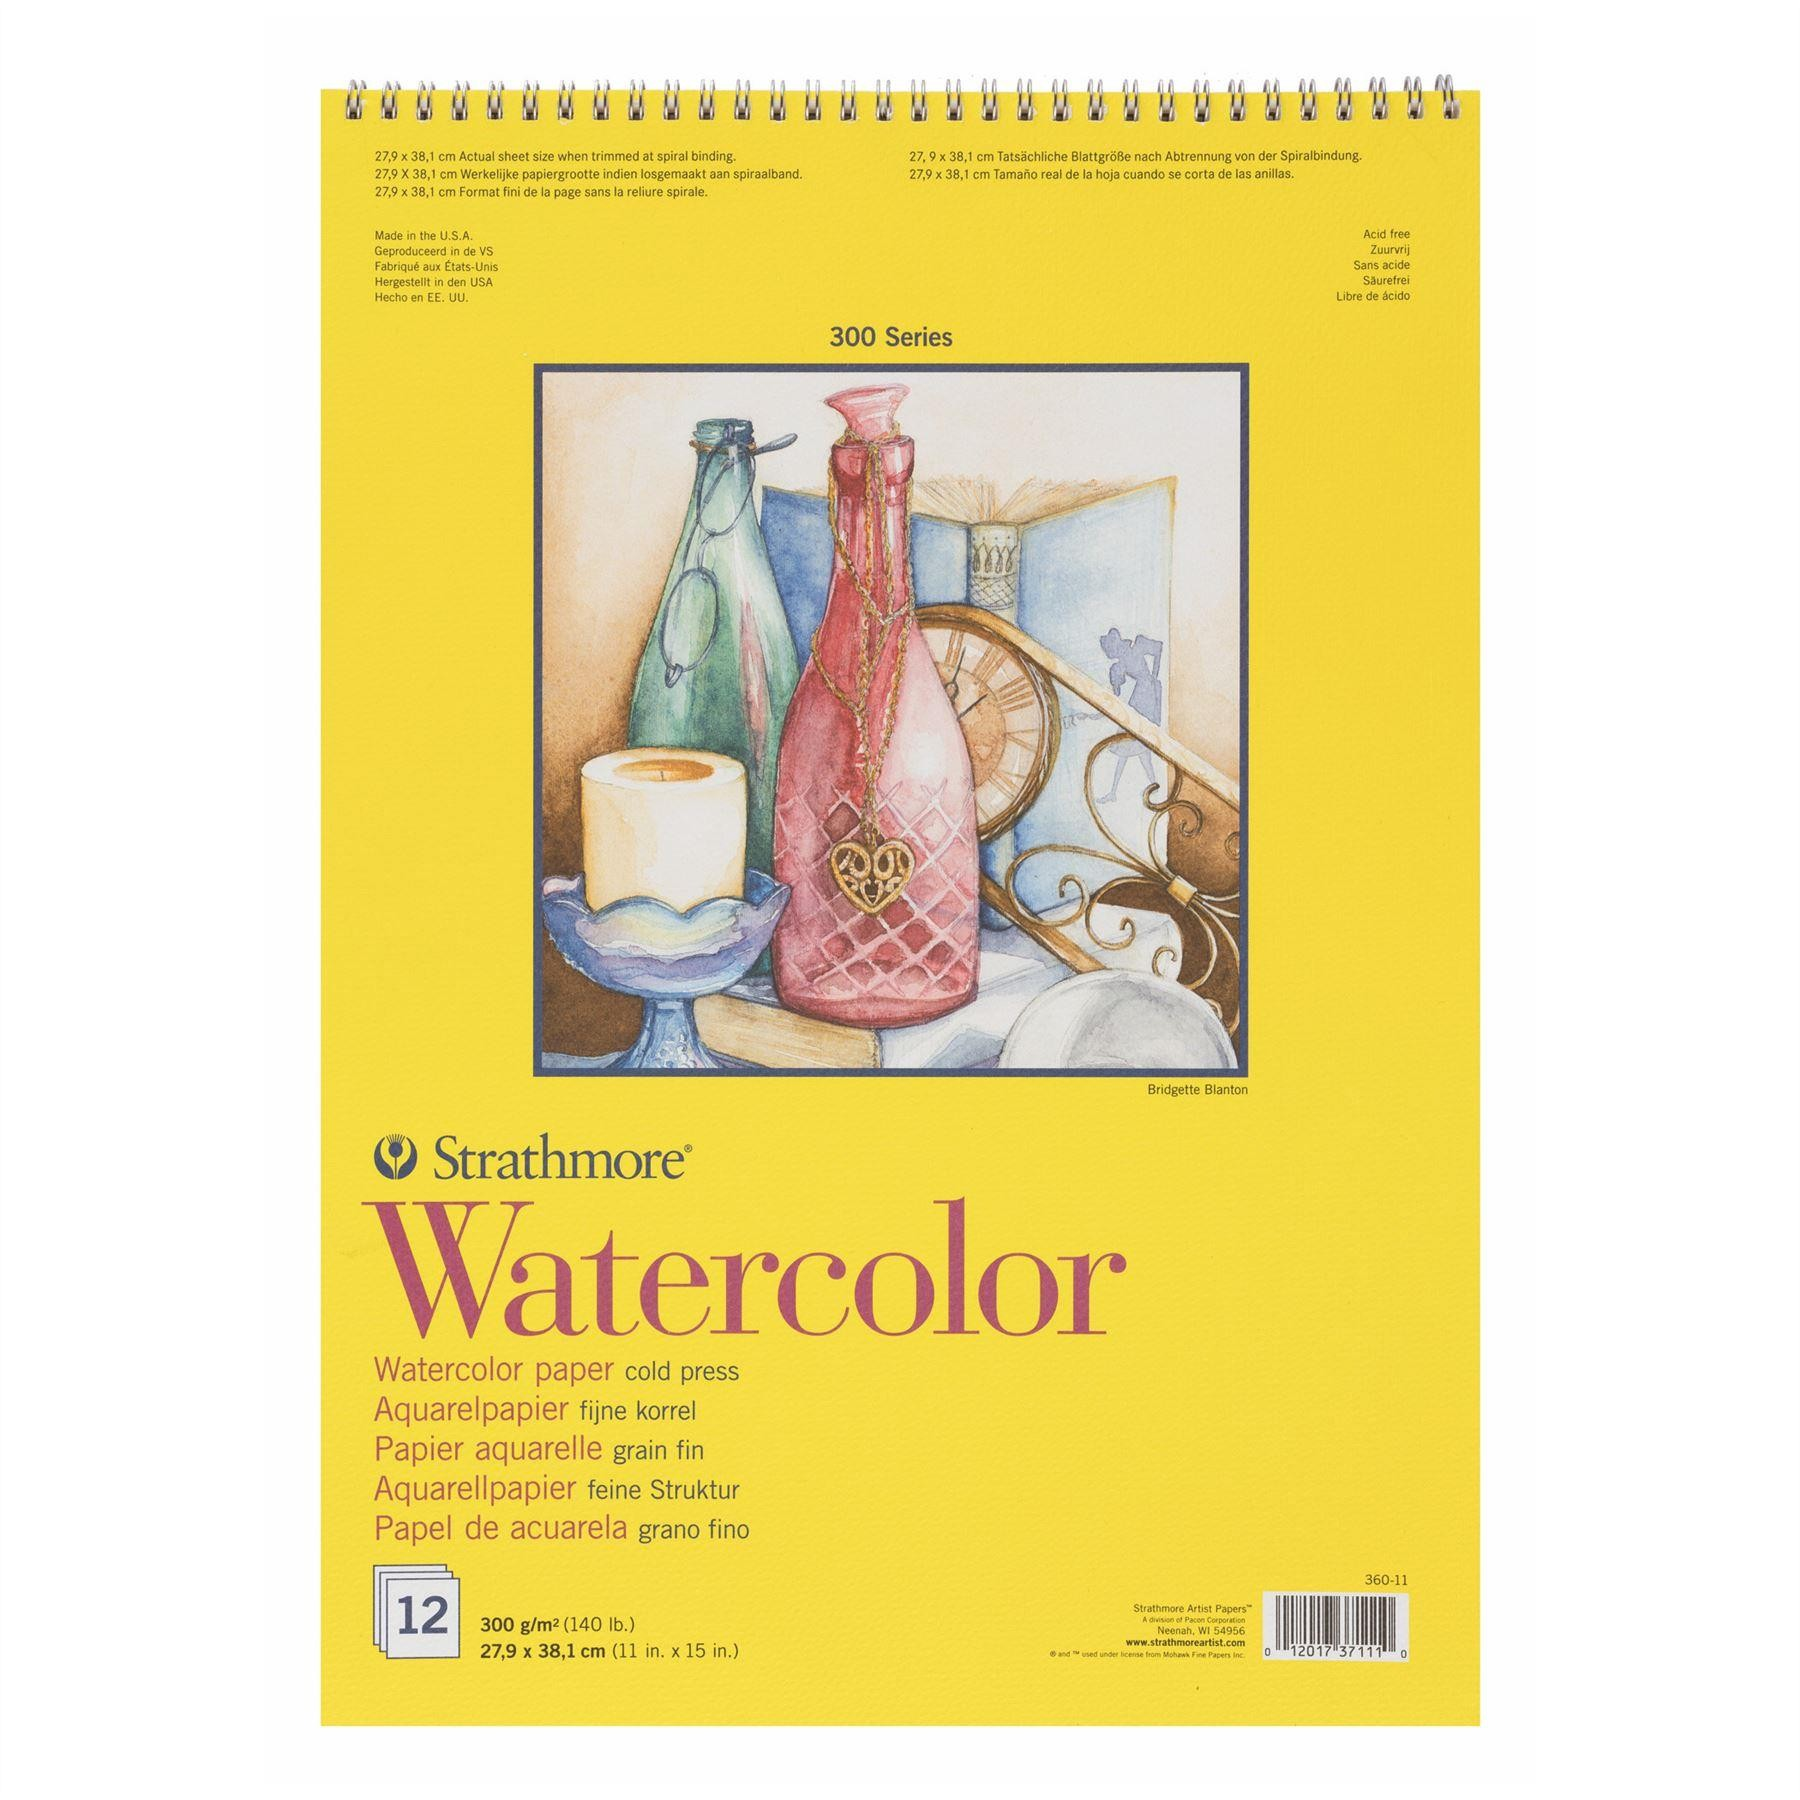 300 series watercolour is an economic of heavyweight student grade paper